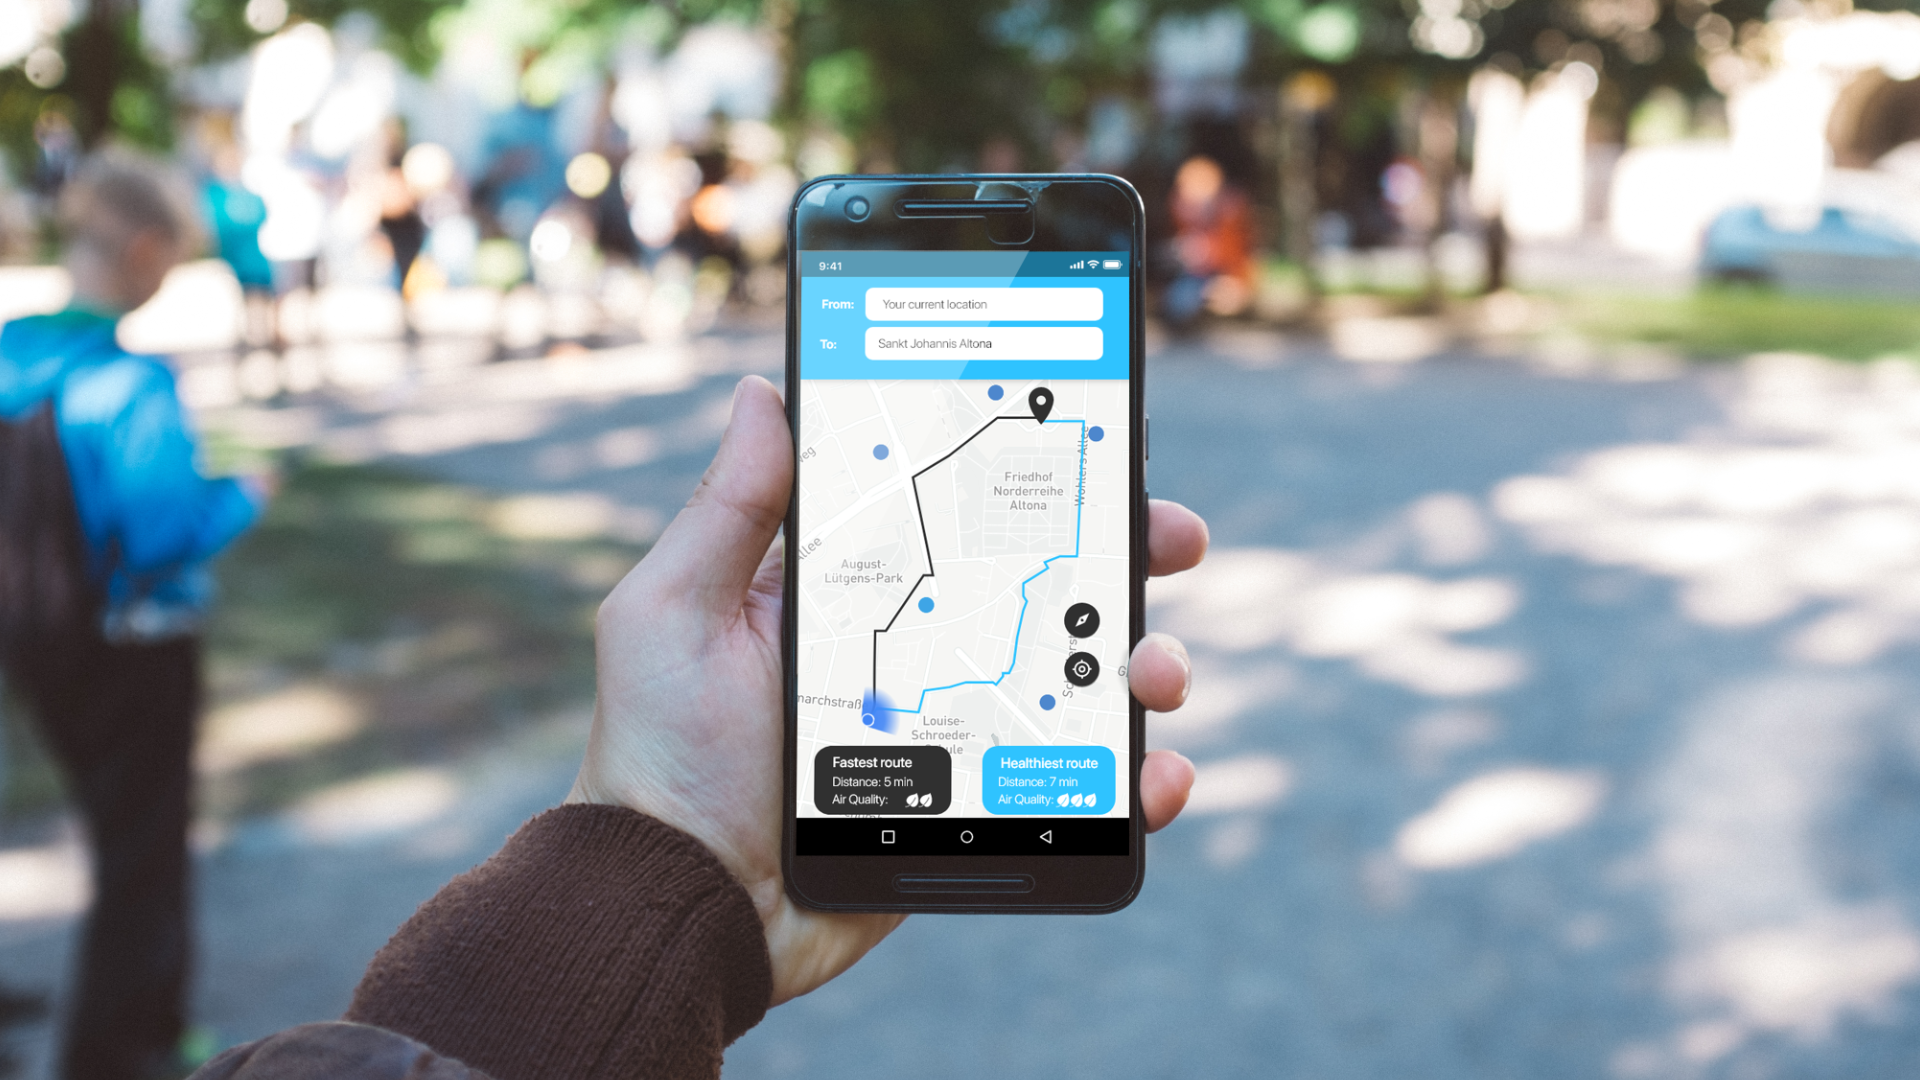 HealthyPlaces is an app that routes pedestrians from A to B while exposing themselves to as little pollution as possible. © HealthyPlaces